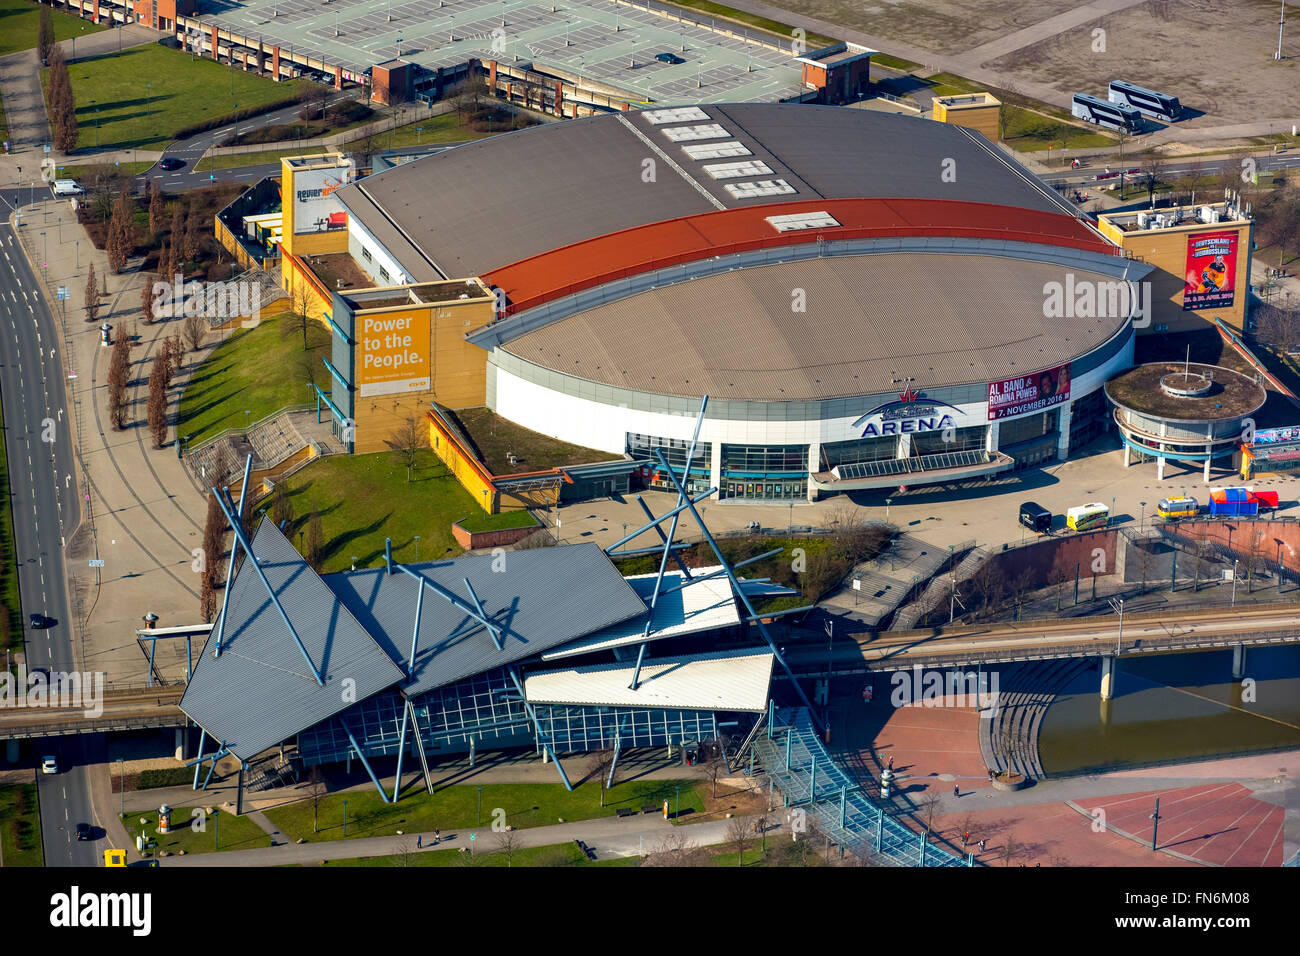 Aerial view, King-Pils Arena, event hall at the Centro Oberhausen, Oberhausen, Ruhr area, North Rhine Westphalia, - Stock Image